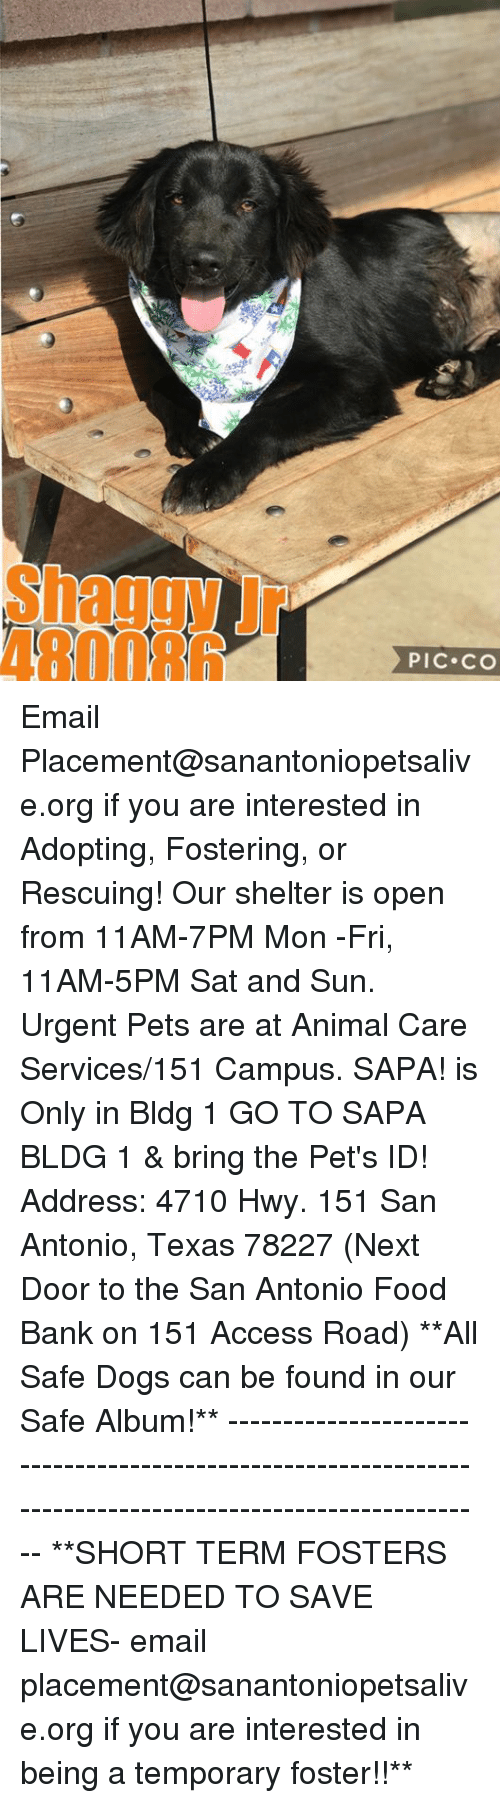 food bank: Shaggy Jr  480086  PIC CO Email Placement@sanantoniopetsalive.org if you are interested in Adopting, Fostering, or Rescuing!  Our shelter is open from 11AM-7PM Mon -Fri, 11AM-5PM Sat and Sun.  Urgent Pets are at Animal Care Services/151 Campus. SAPA! is Only in Bldg 1 GO TO SAPA BLDG 1 & bring the Pet's ID! Address: 4710 Hwy. 151 San Antonio, Texas 78227 (Next Door to the San Antonio Food Bank on 151 Access Road)  **All Safe Dogs can be found in our Safe Album!** ---------------------------------------------------------------------------------------------------------- **SHORT TERM FOSTERS ARE NEEDED TO SAVE LIVES- email placement@sanantoniopetsalive.org if you are interested in being a temporary foster!!**